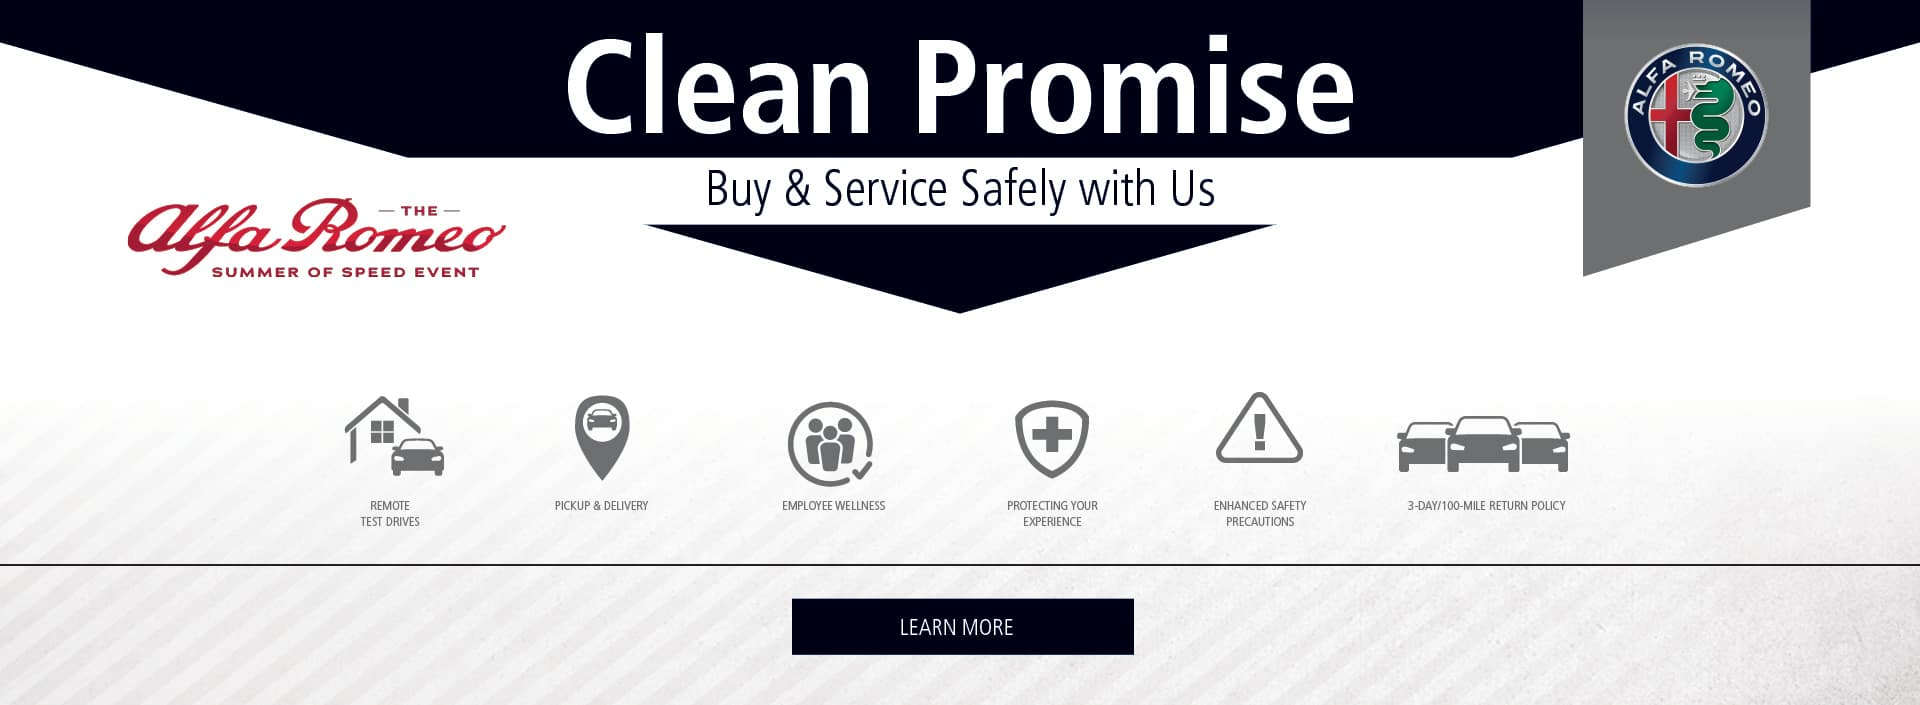 Clean Promise